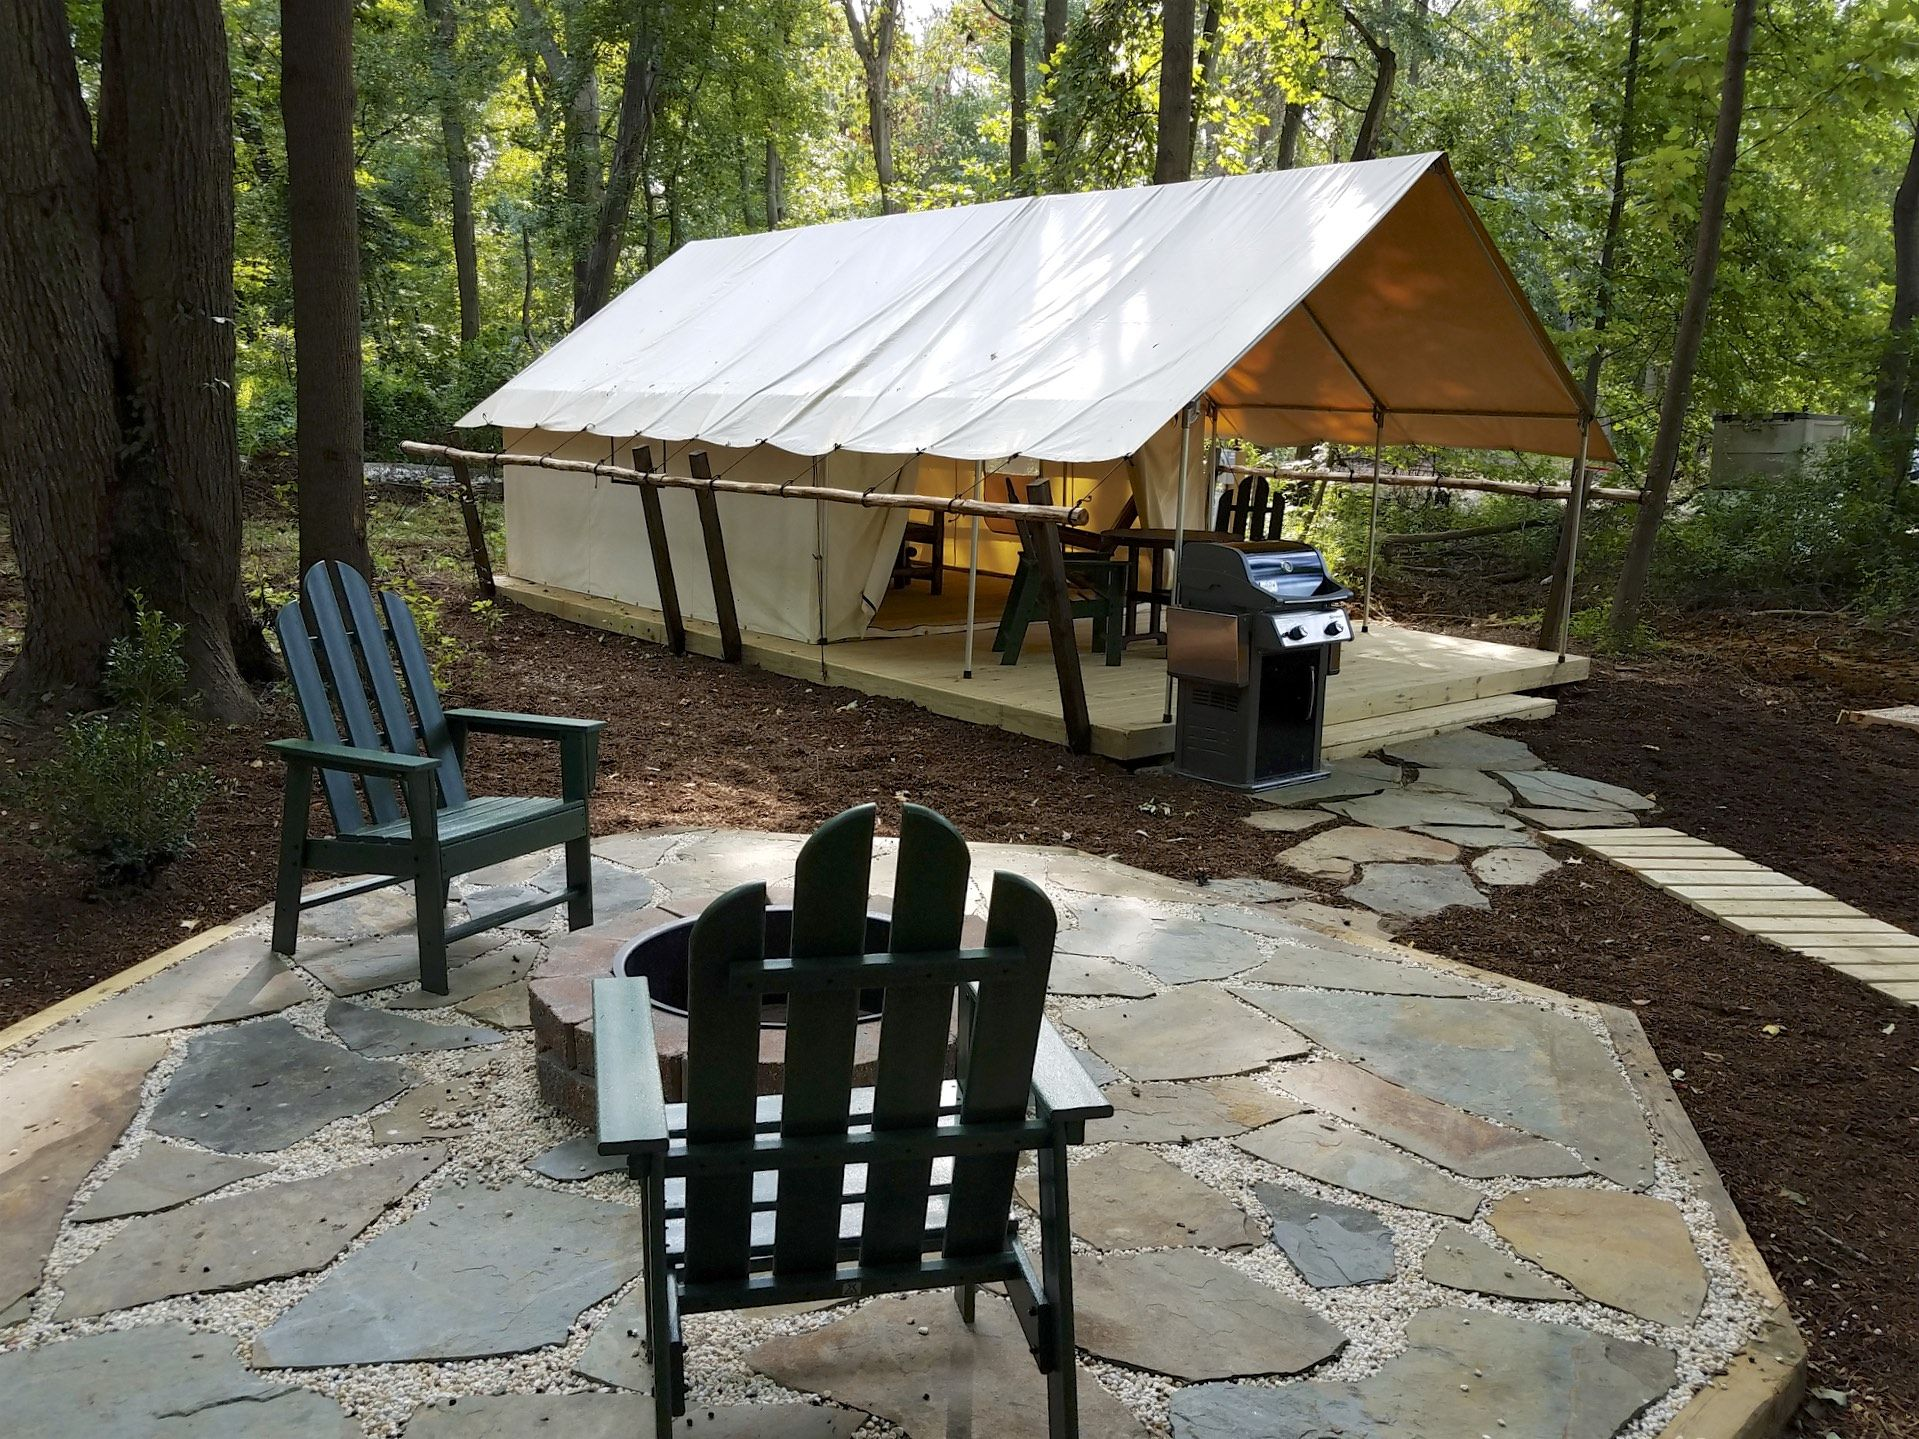 New glamping tent patio site at the Philadelphia South Clarksboro